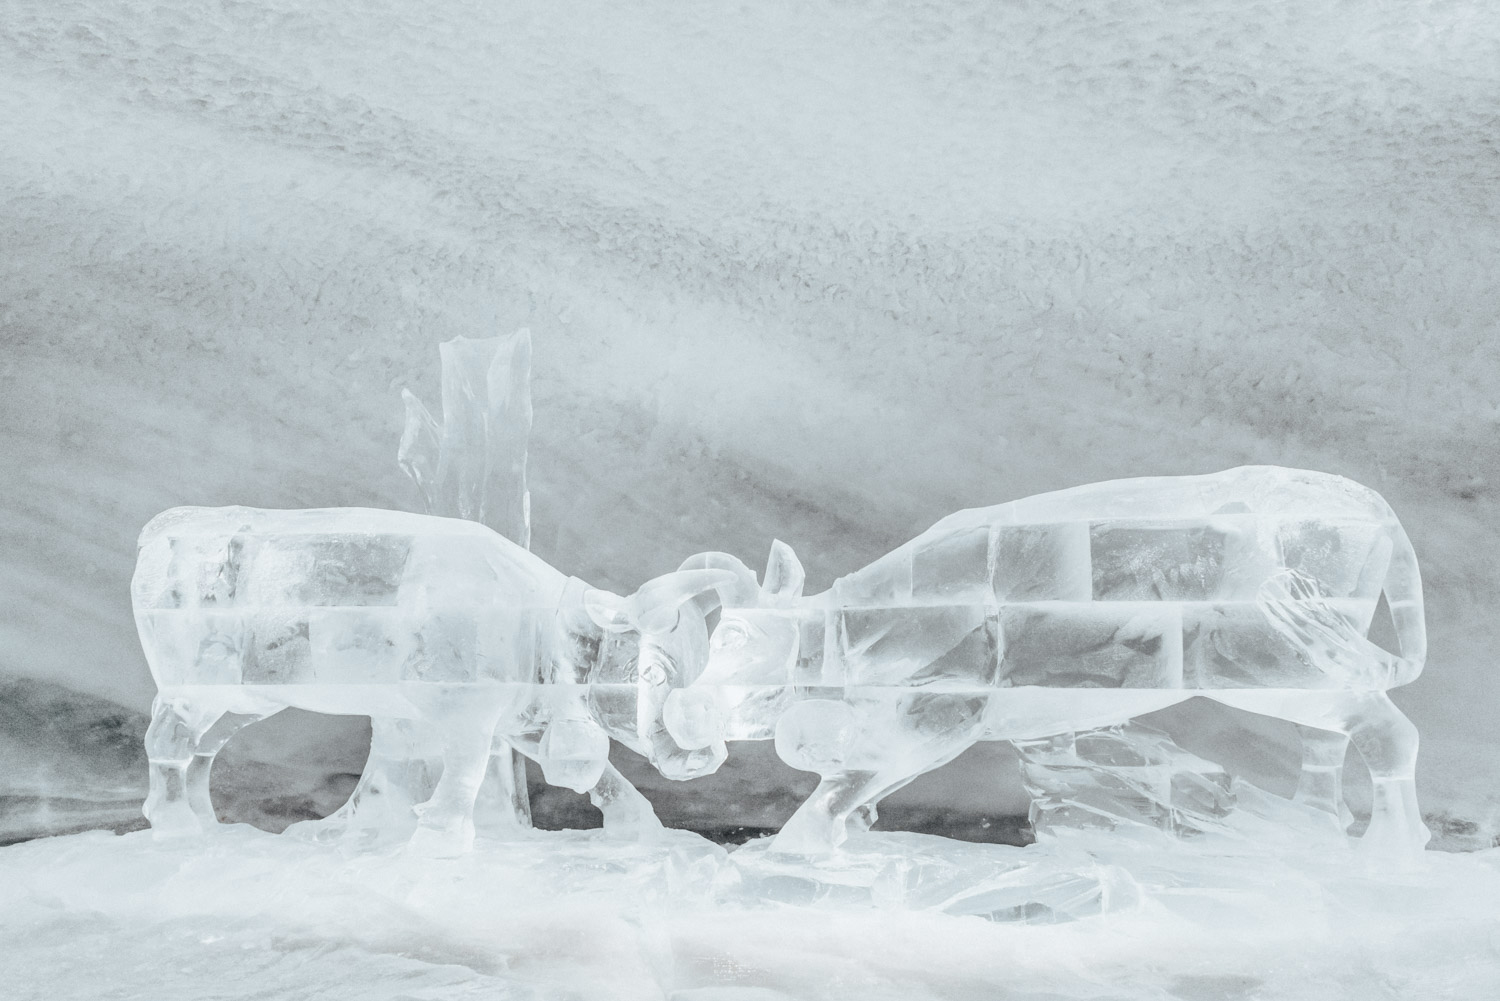 Ice Sculptures at Glacier Palace | Things to Do in Zermatt, Switzerland